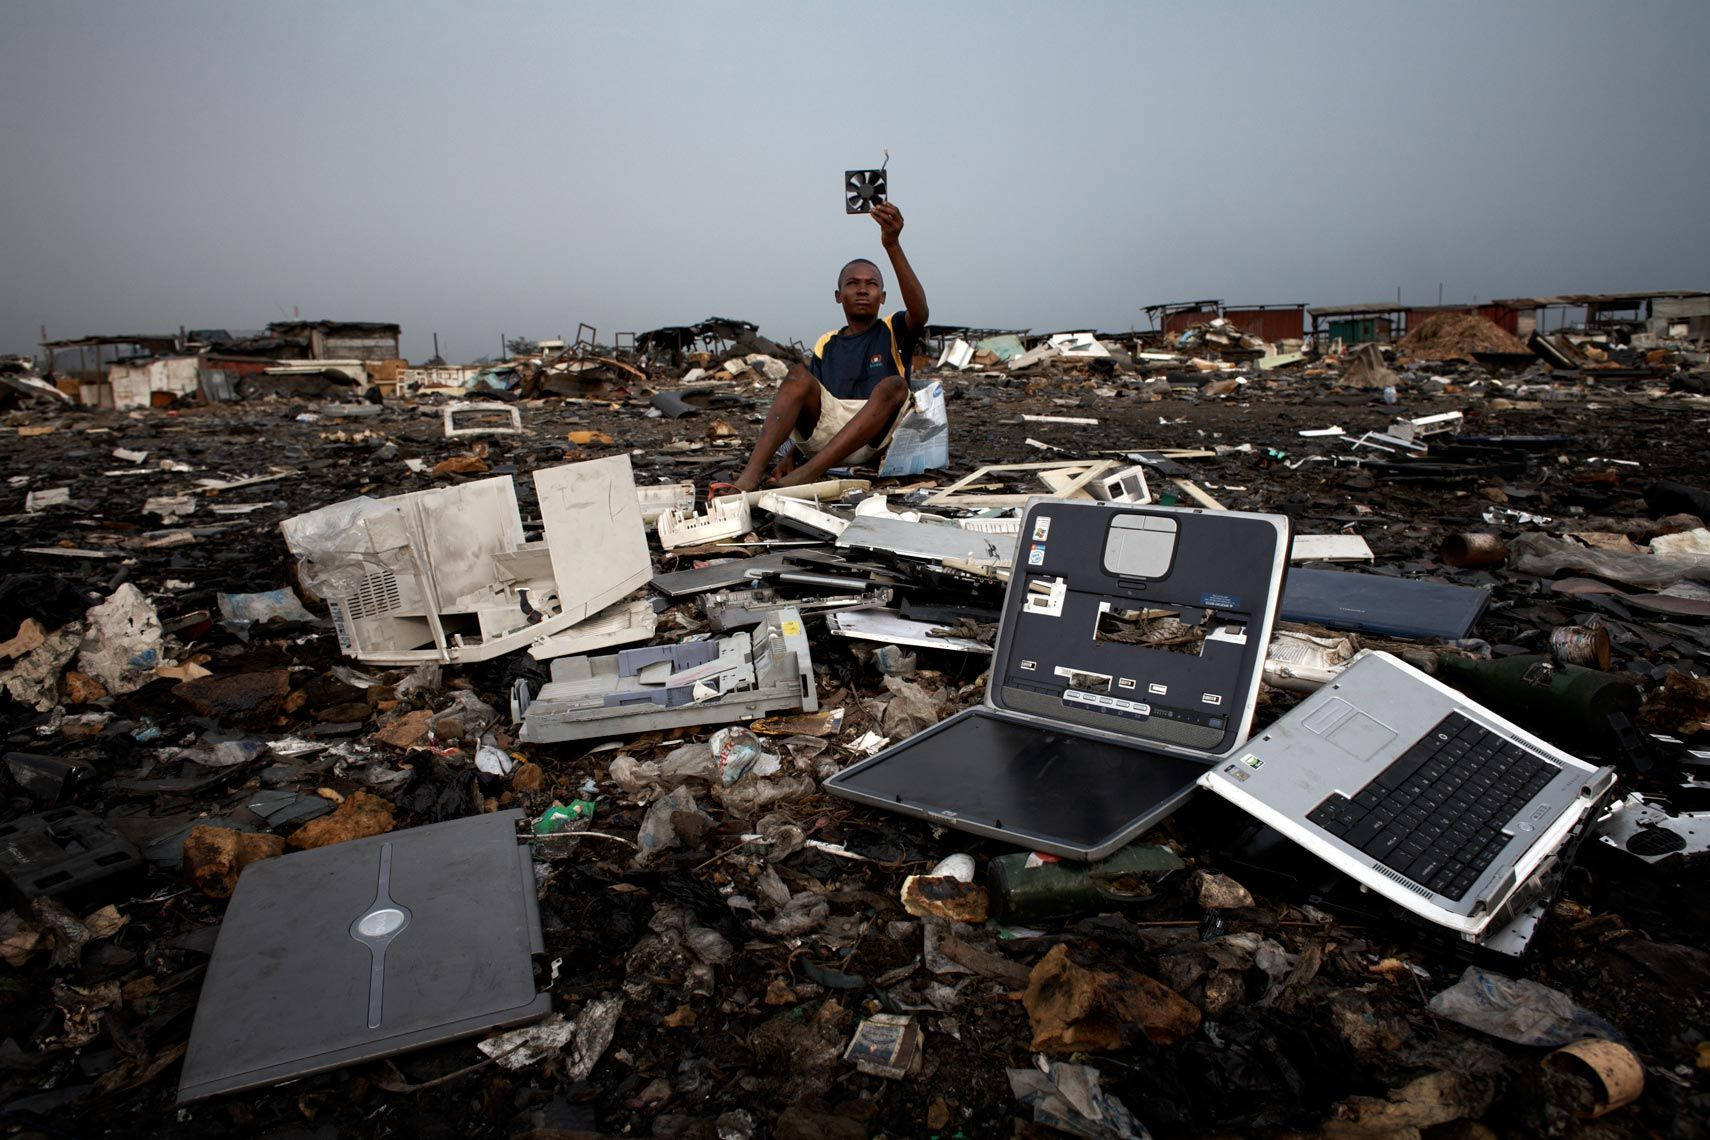 e-waste dump - Google Search | Electronic waste, Countries of the world,  Old computers